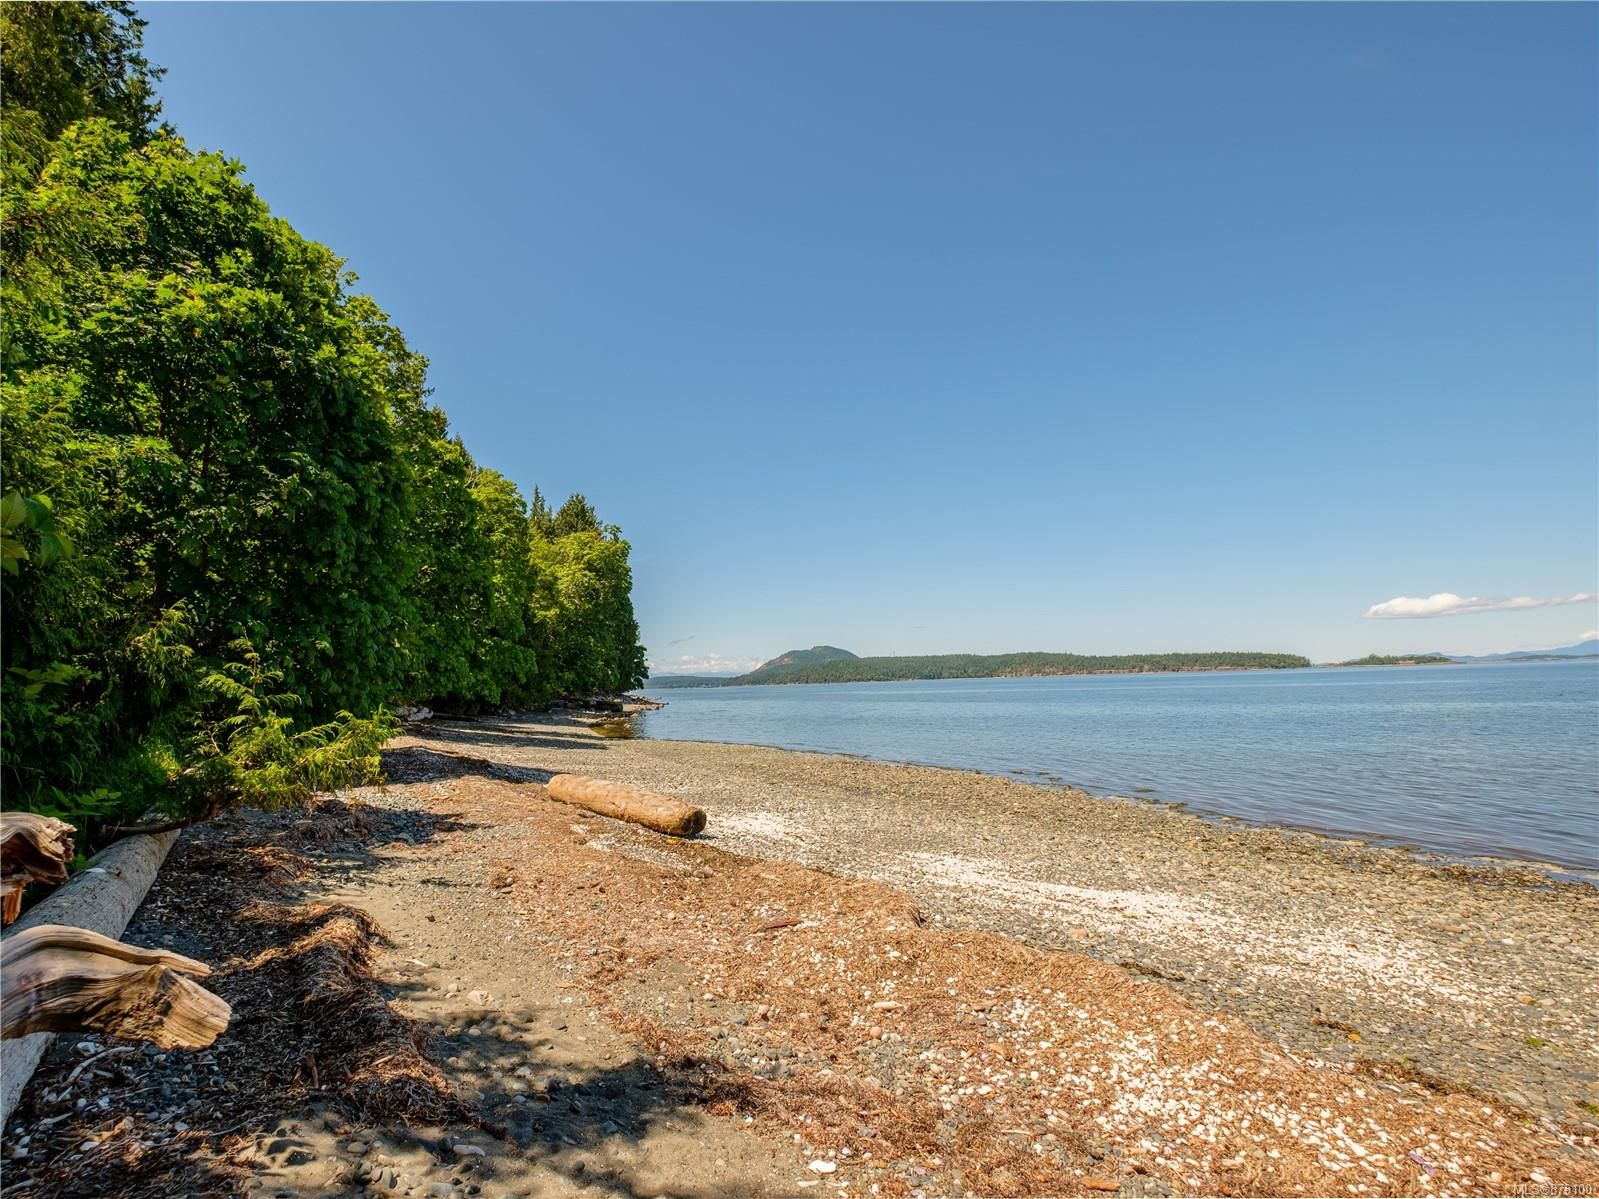 Main Photo: 7484 Lantzville Rd in : Na Lower Lantzville House for sale (Nanaimo)  : MLS®# 878100